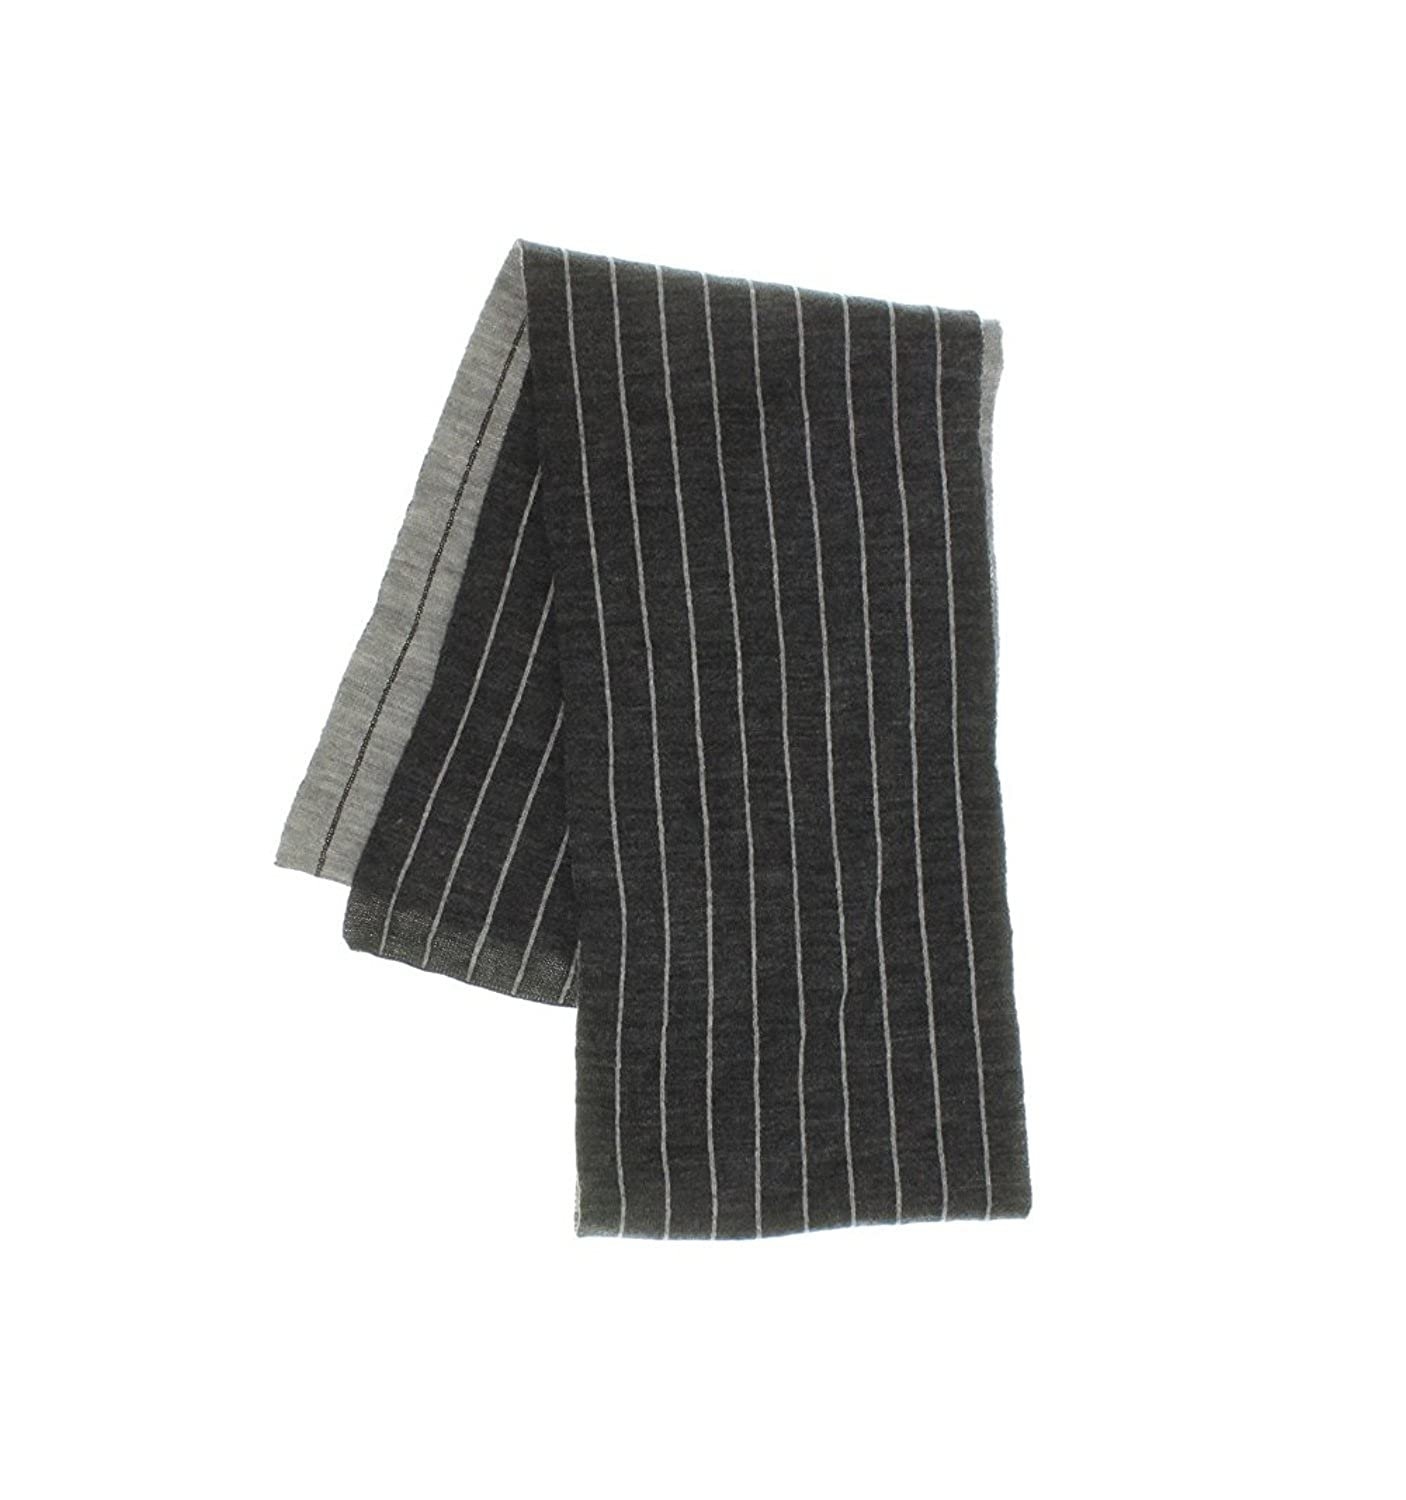 Chaps Unisex Reversible Pinstriped Knit Scarf One Size, Gray